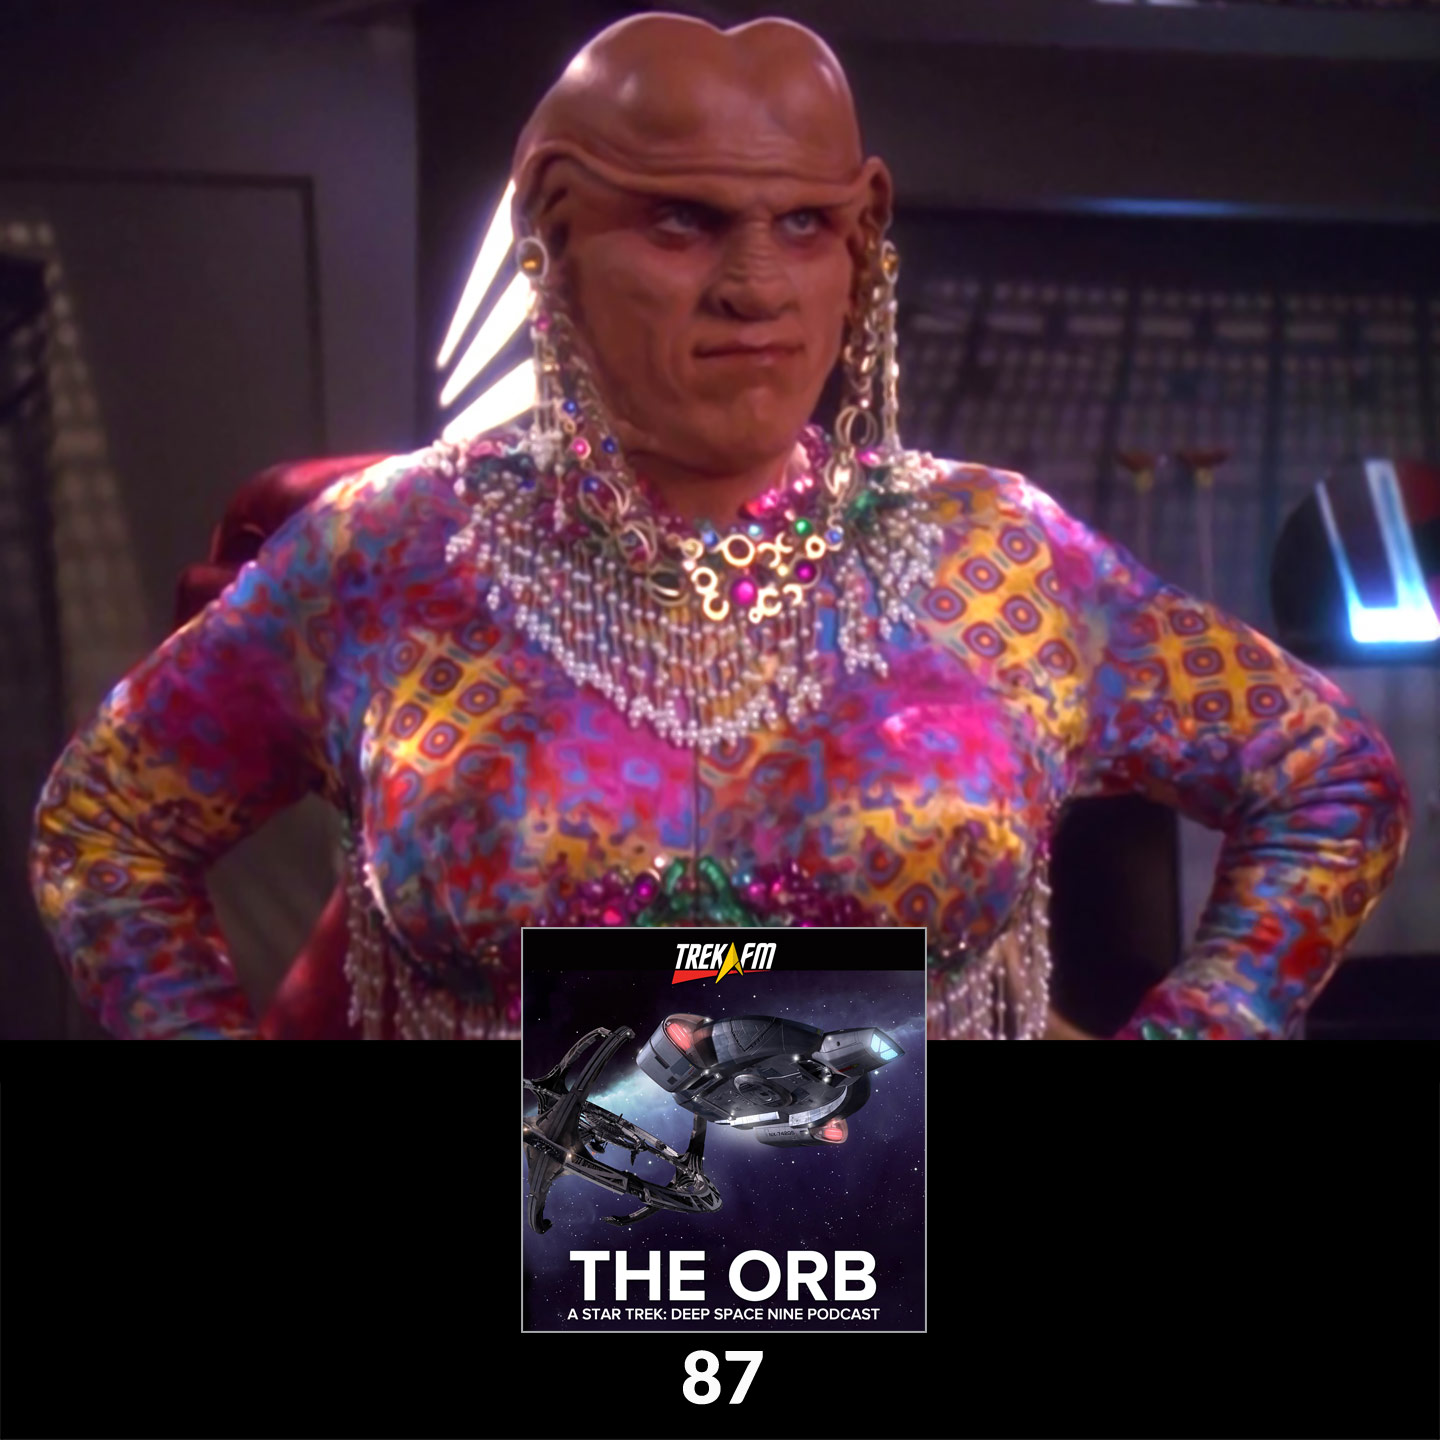 The Orb 87: I'm Gonna Need Some Brain Bleach Now